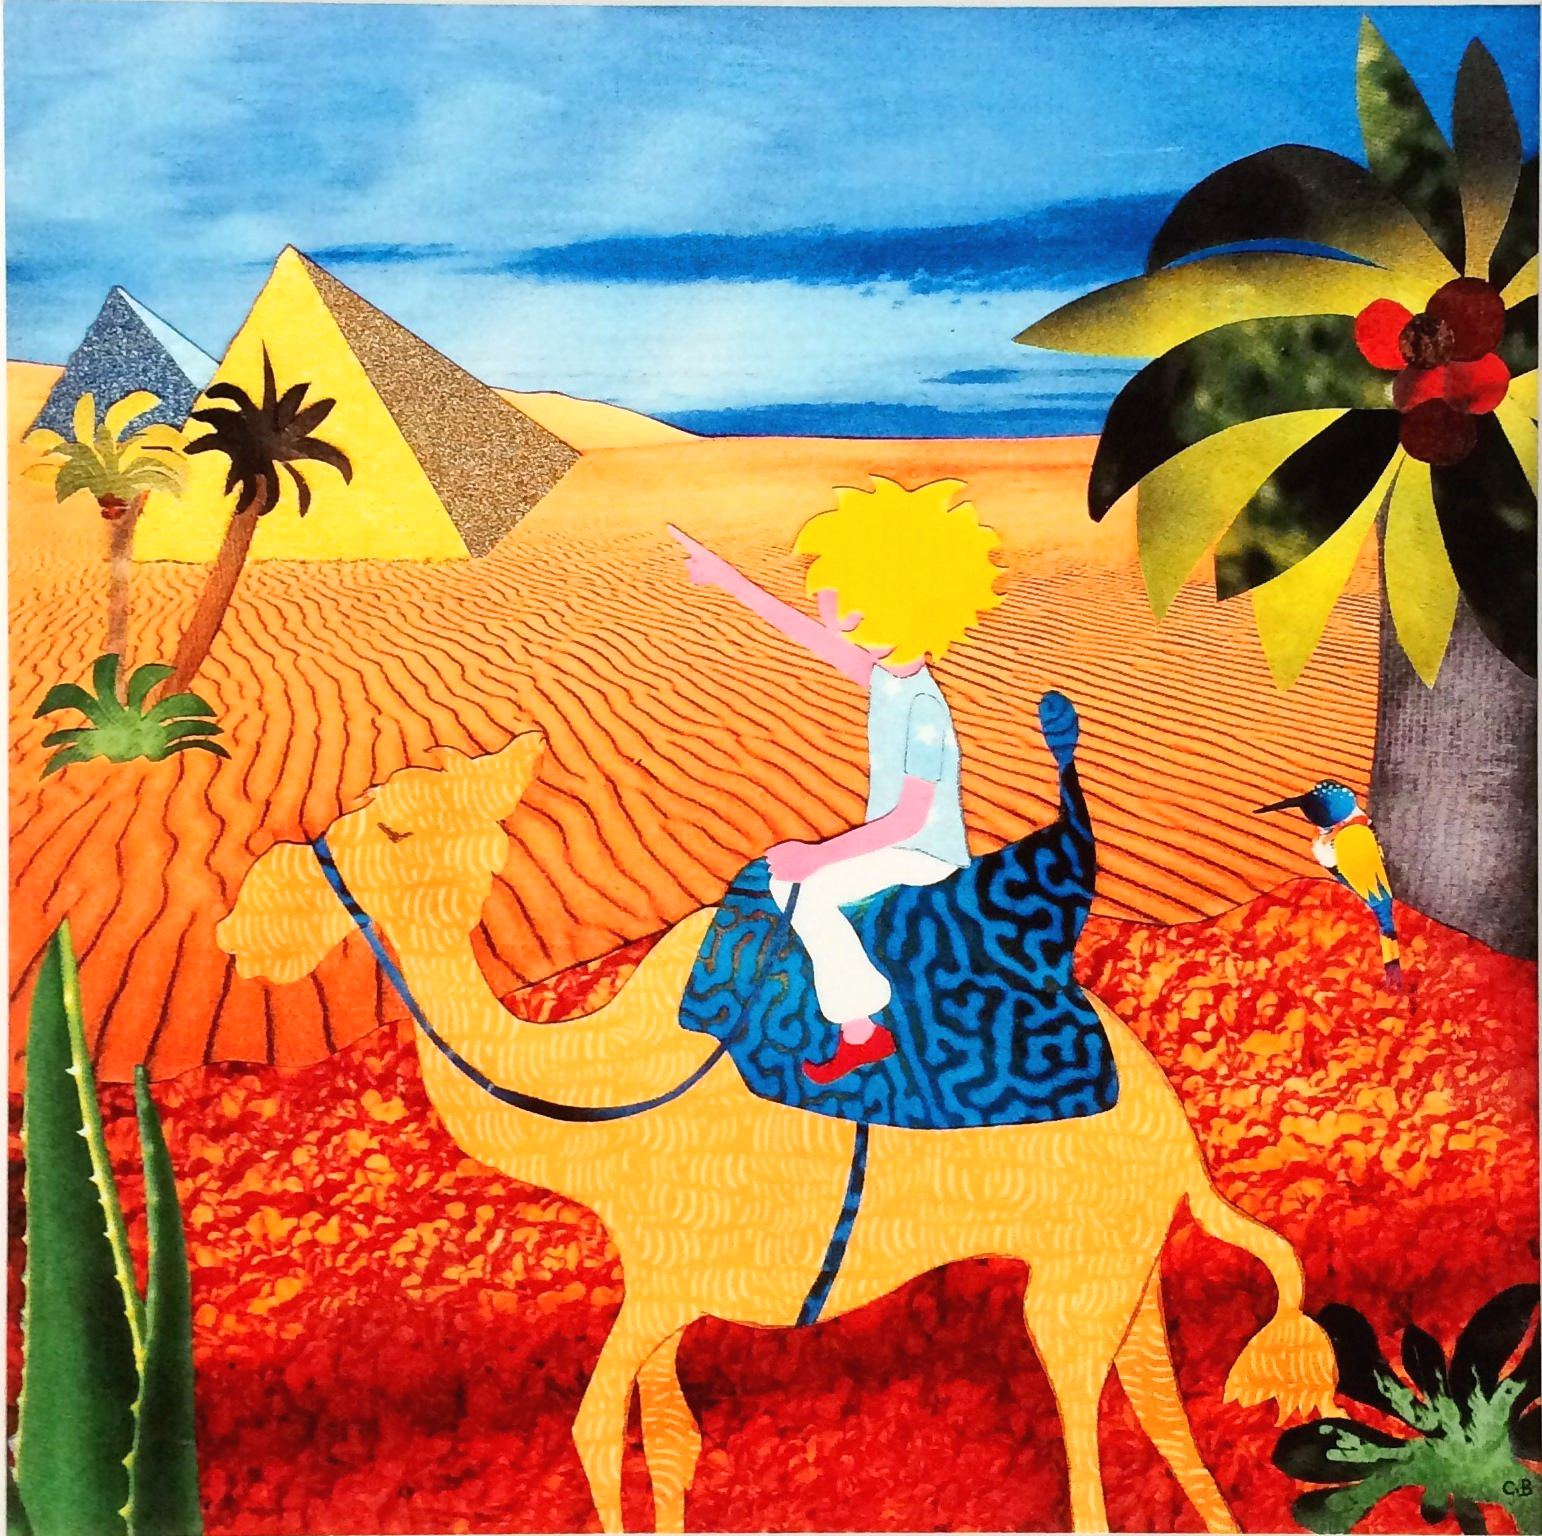 Camel ride - little boy